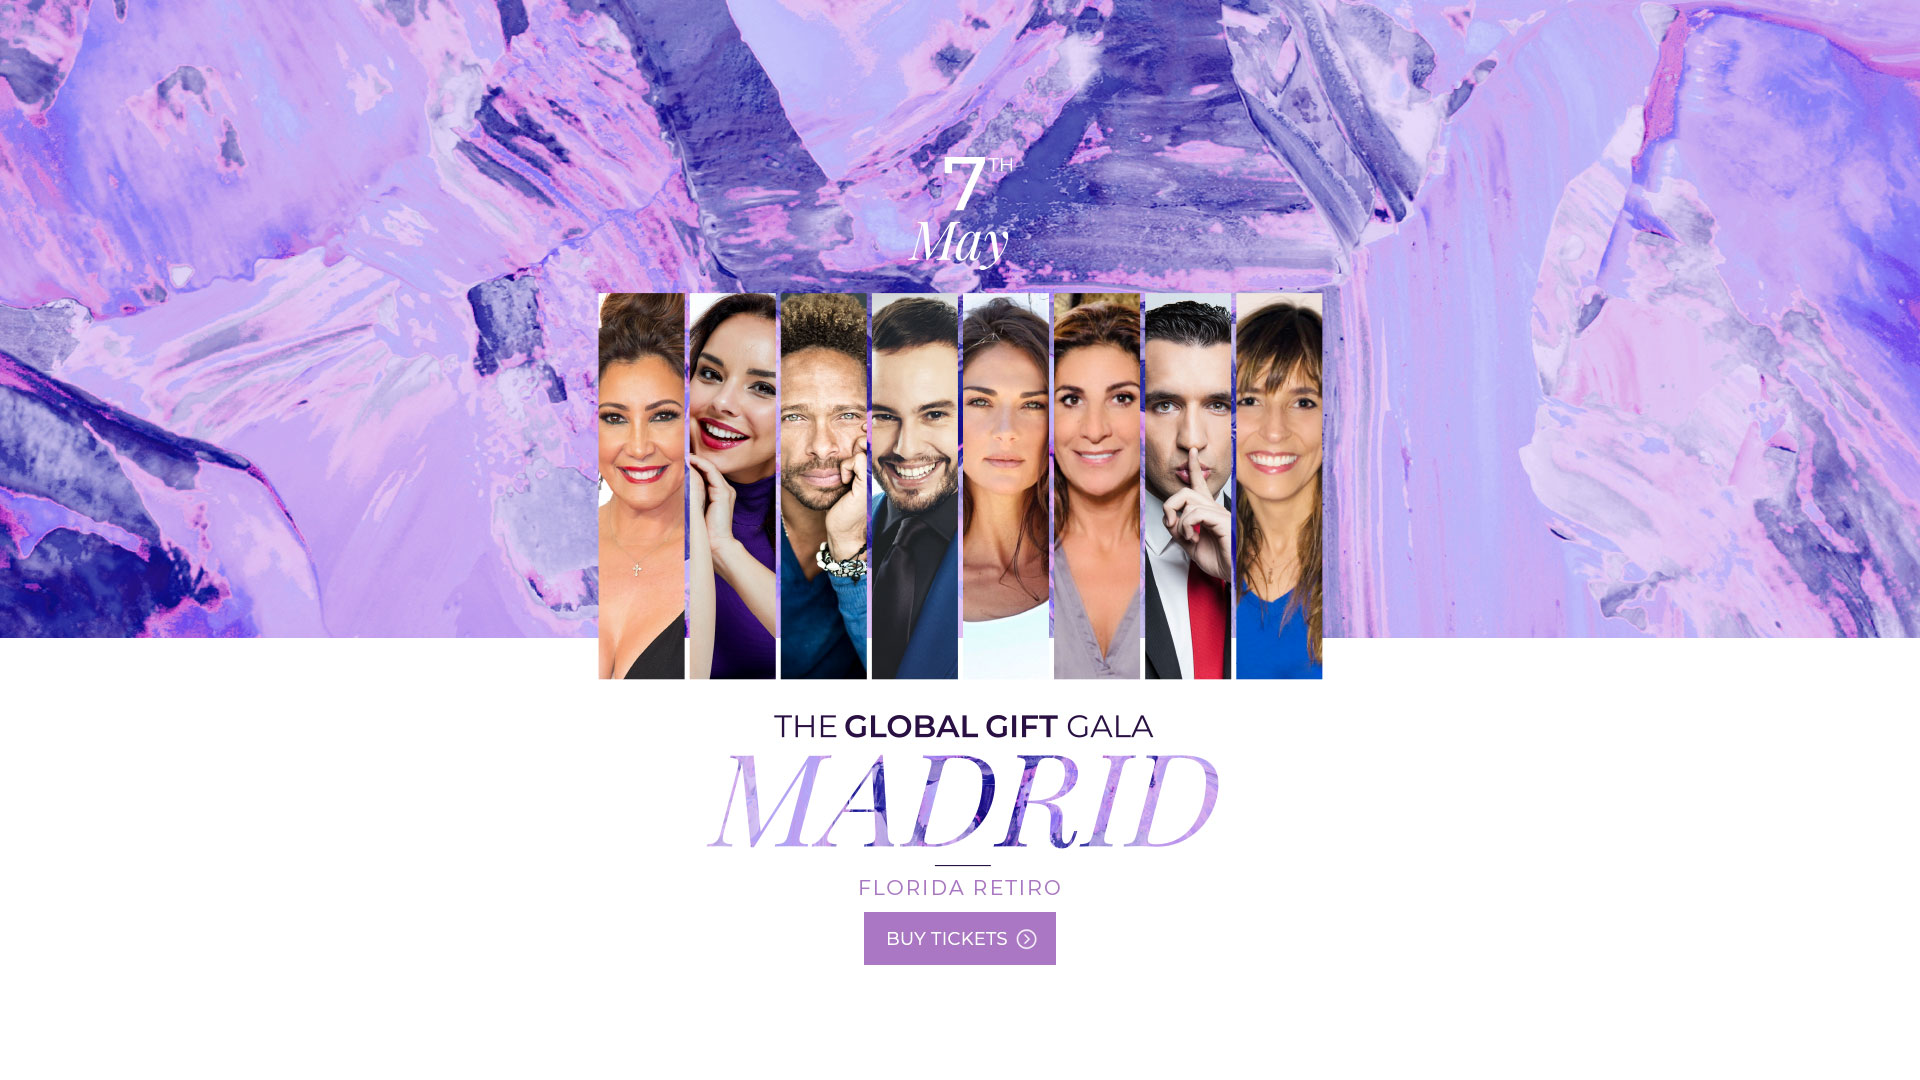 The Global Gift Gala Madrid 2019